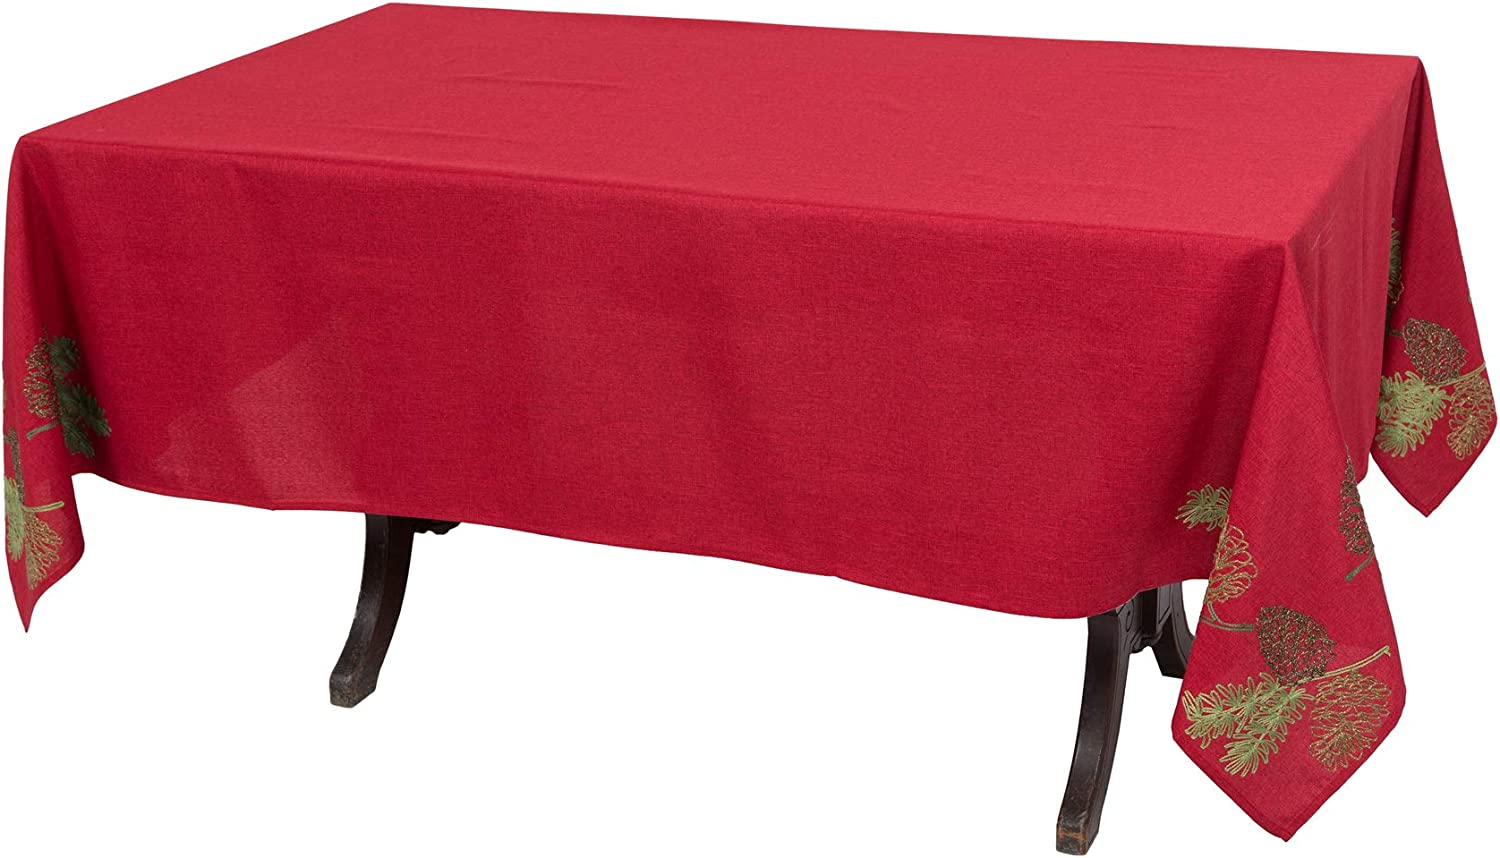 Xia Home Fashions Christmas Pine Tree Branches Tablecloth, 70''x144'', Red